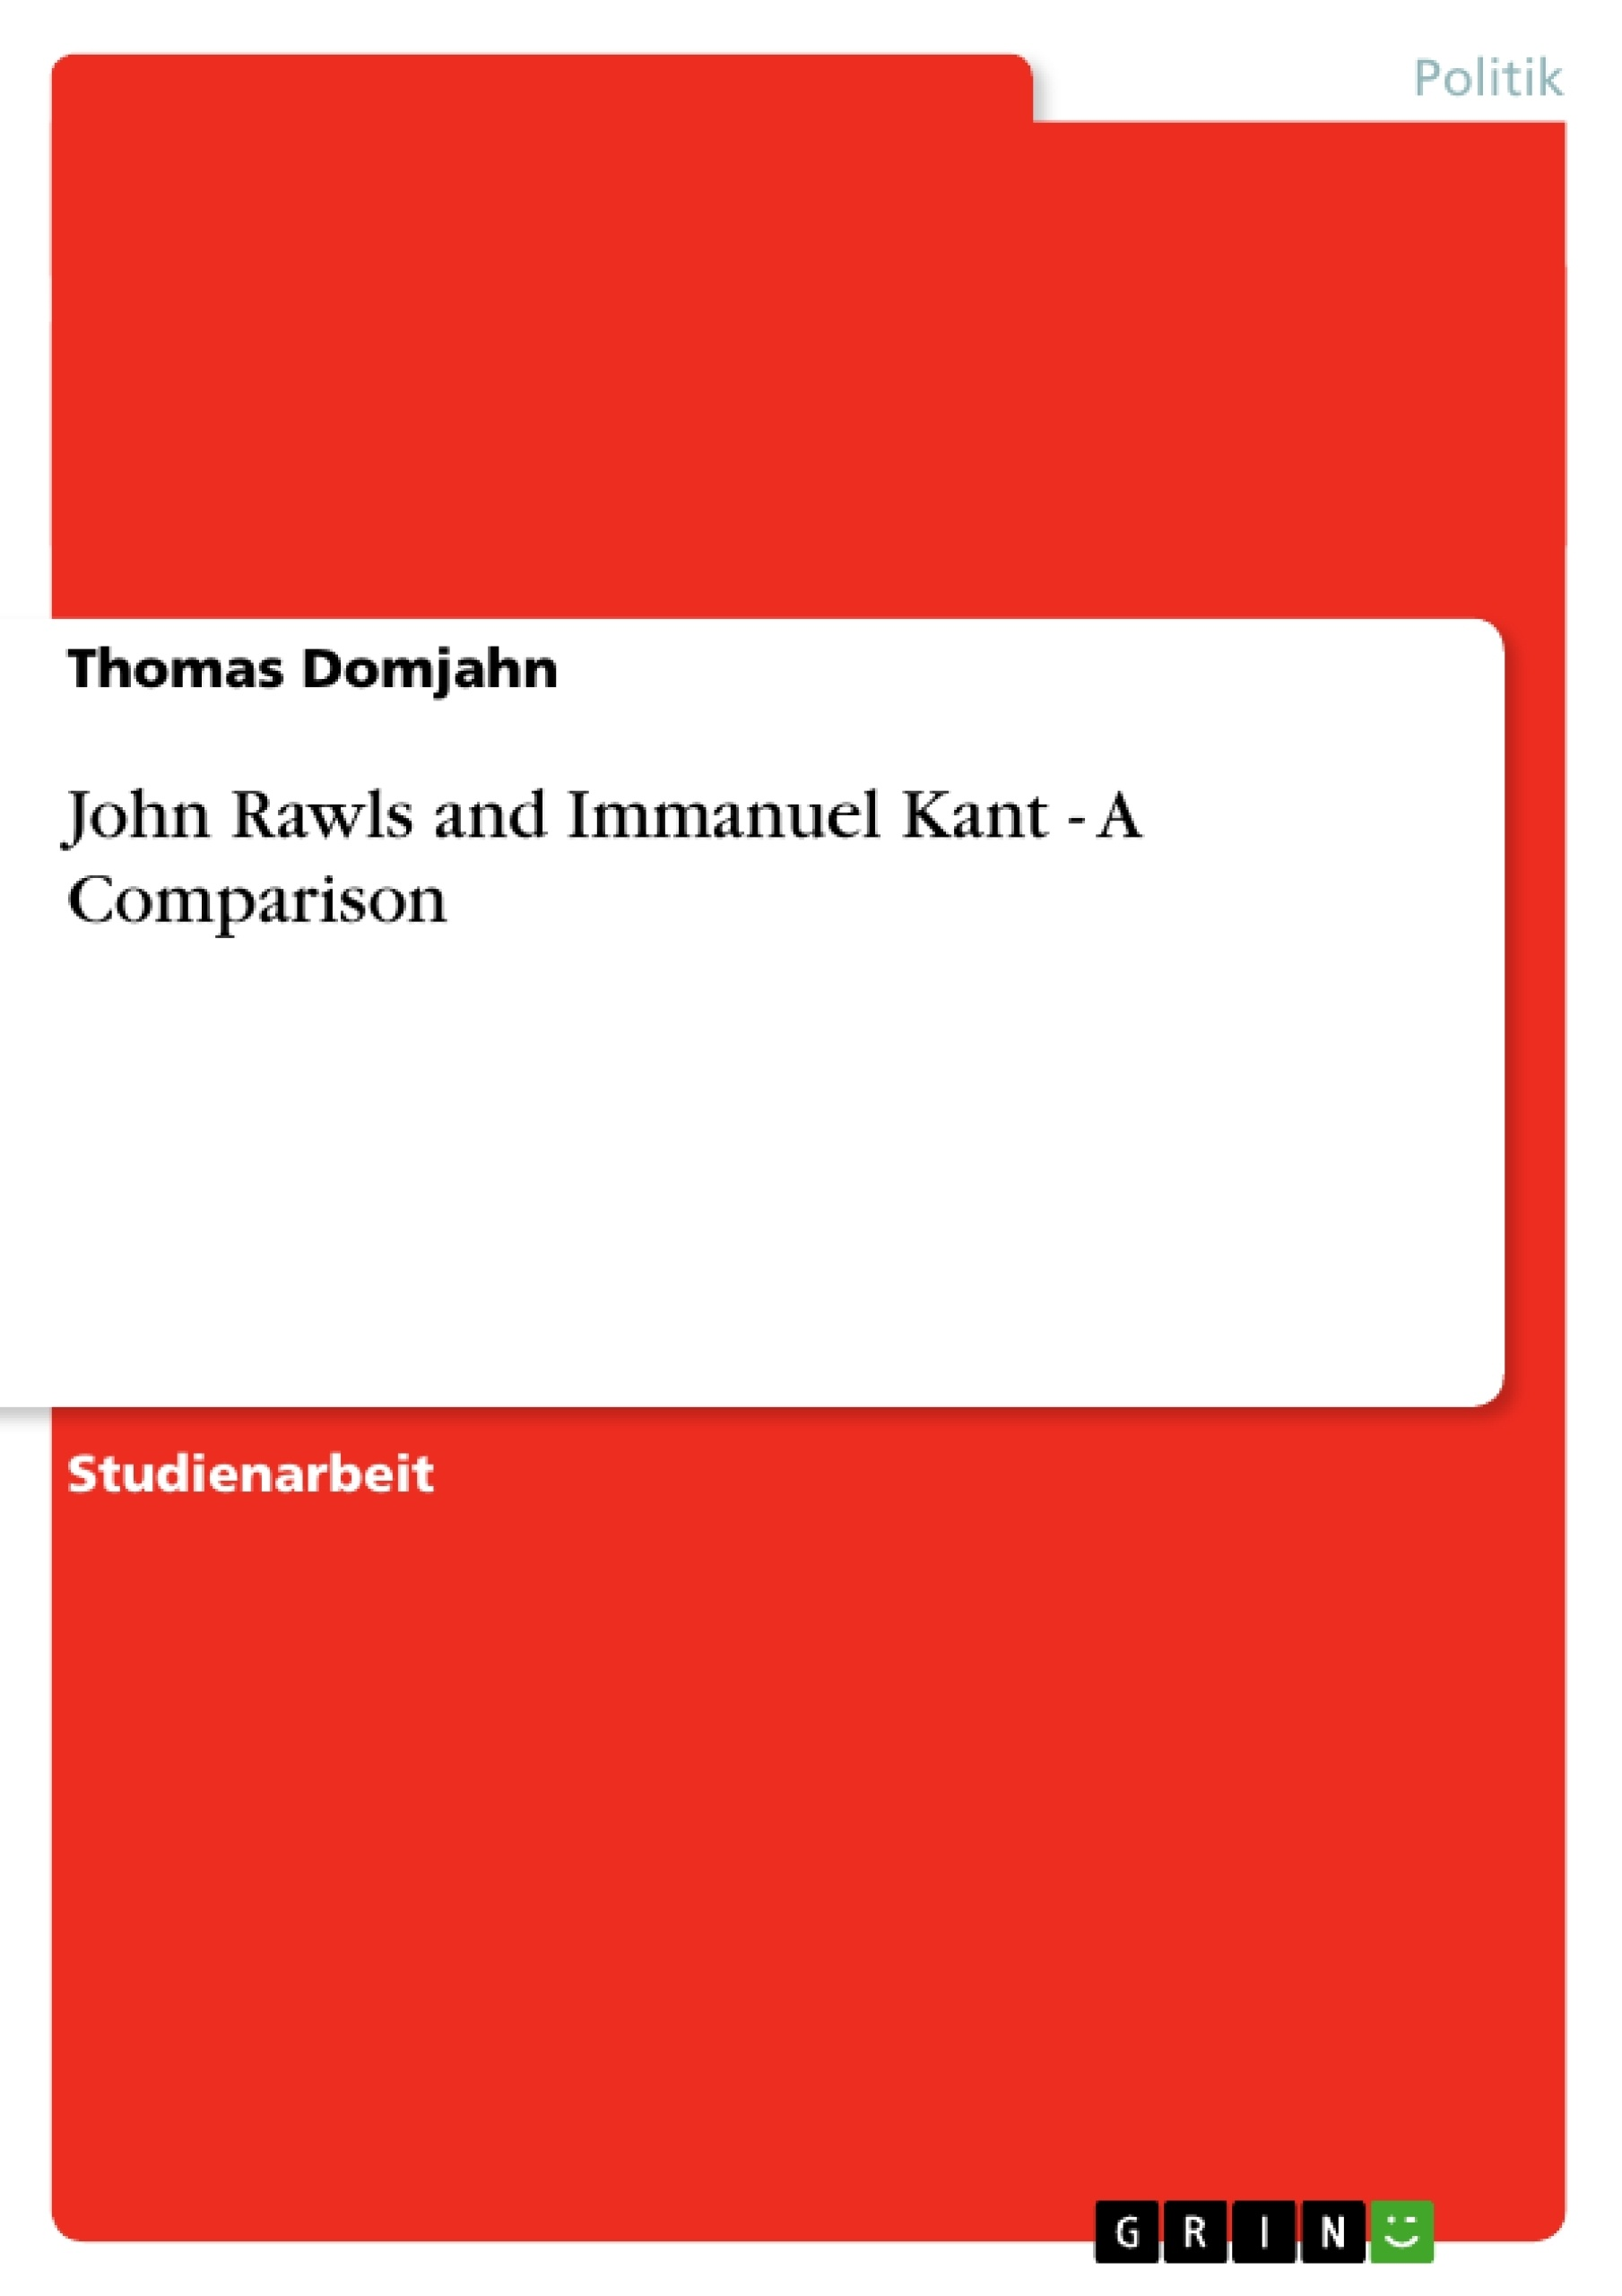 John Rawls and Immanuel Kant - A Comparison | Masterarbeit ...